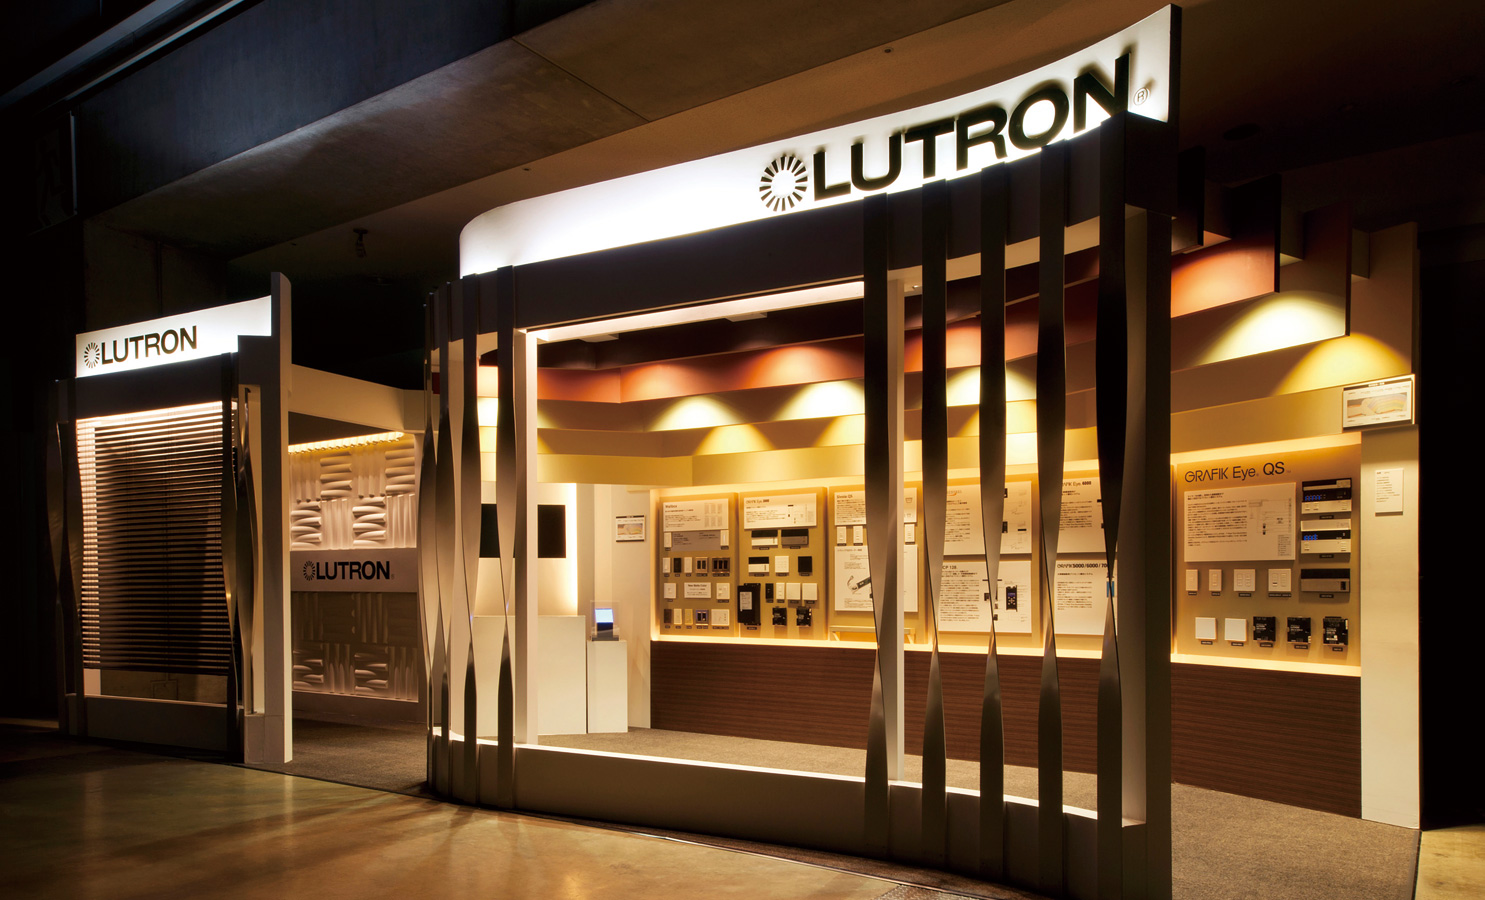 Lighting Fair 2011 / Lutron Asuka Booth